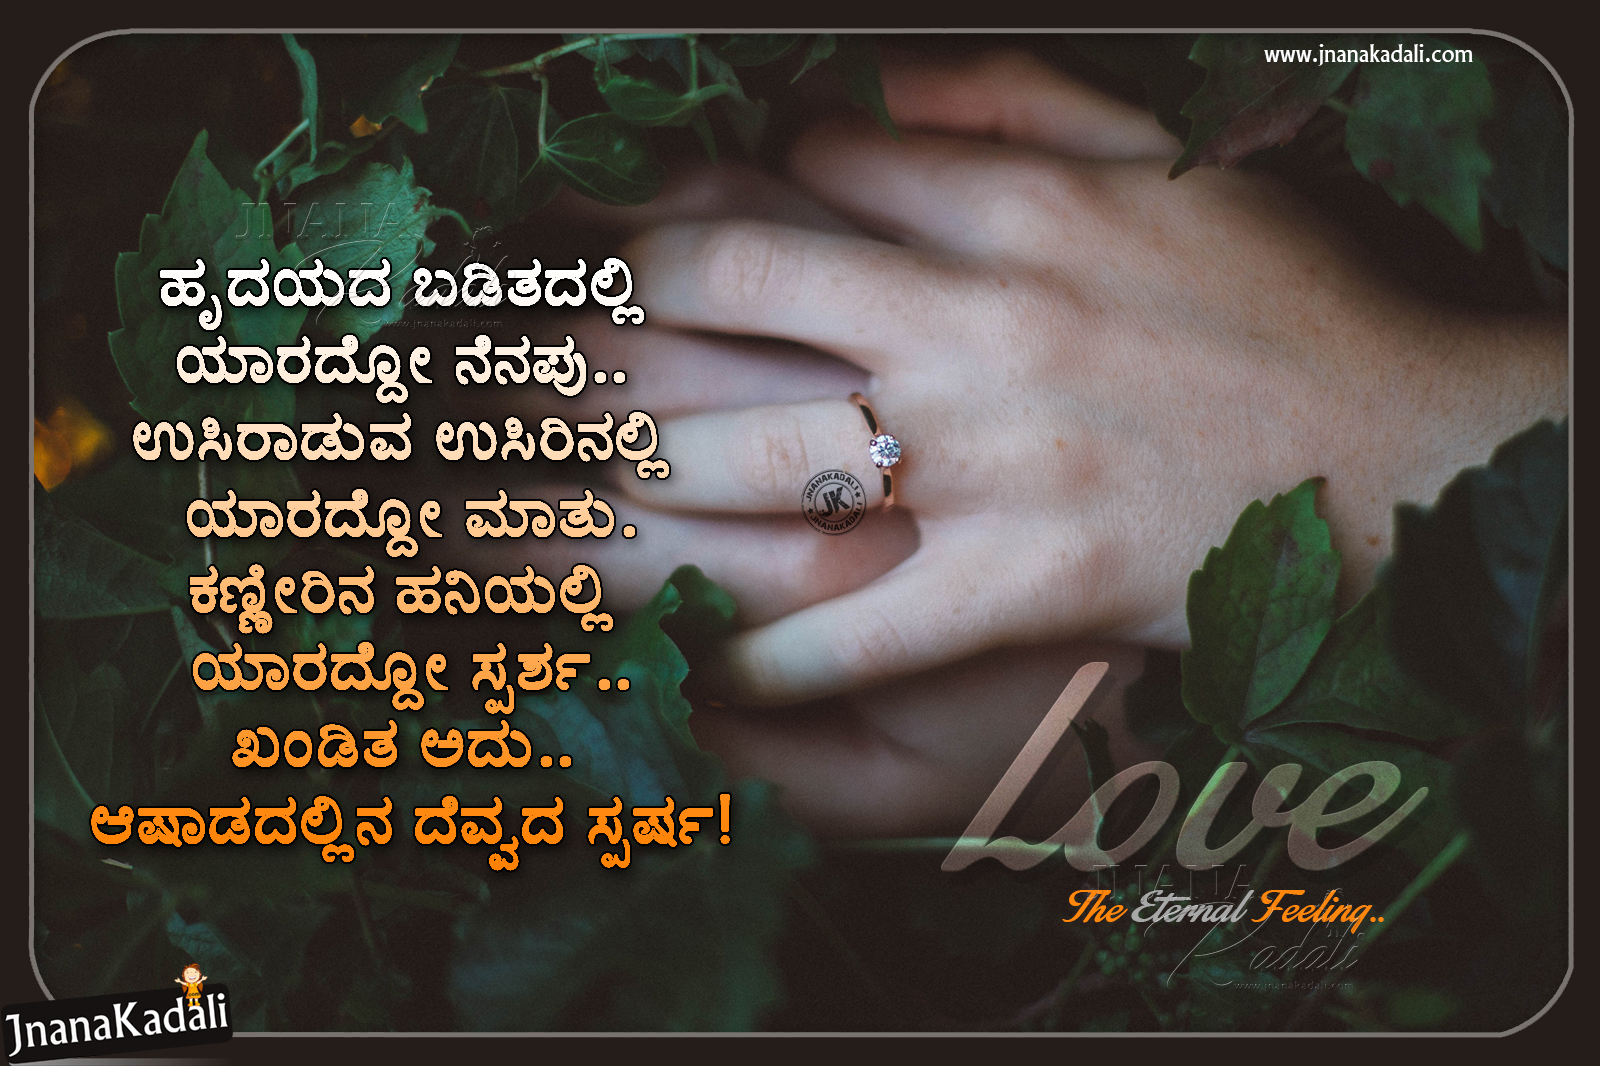 Heart Touching Kannada Love Messages Alone Love Quotes Hd Wallpapers In Kannada Brainysms